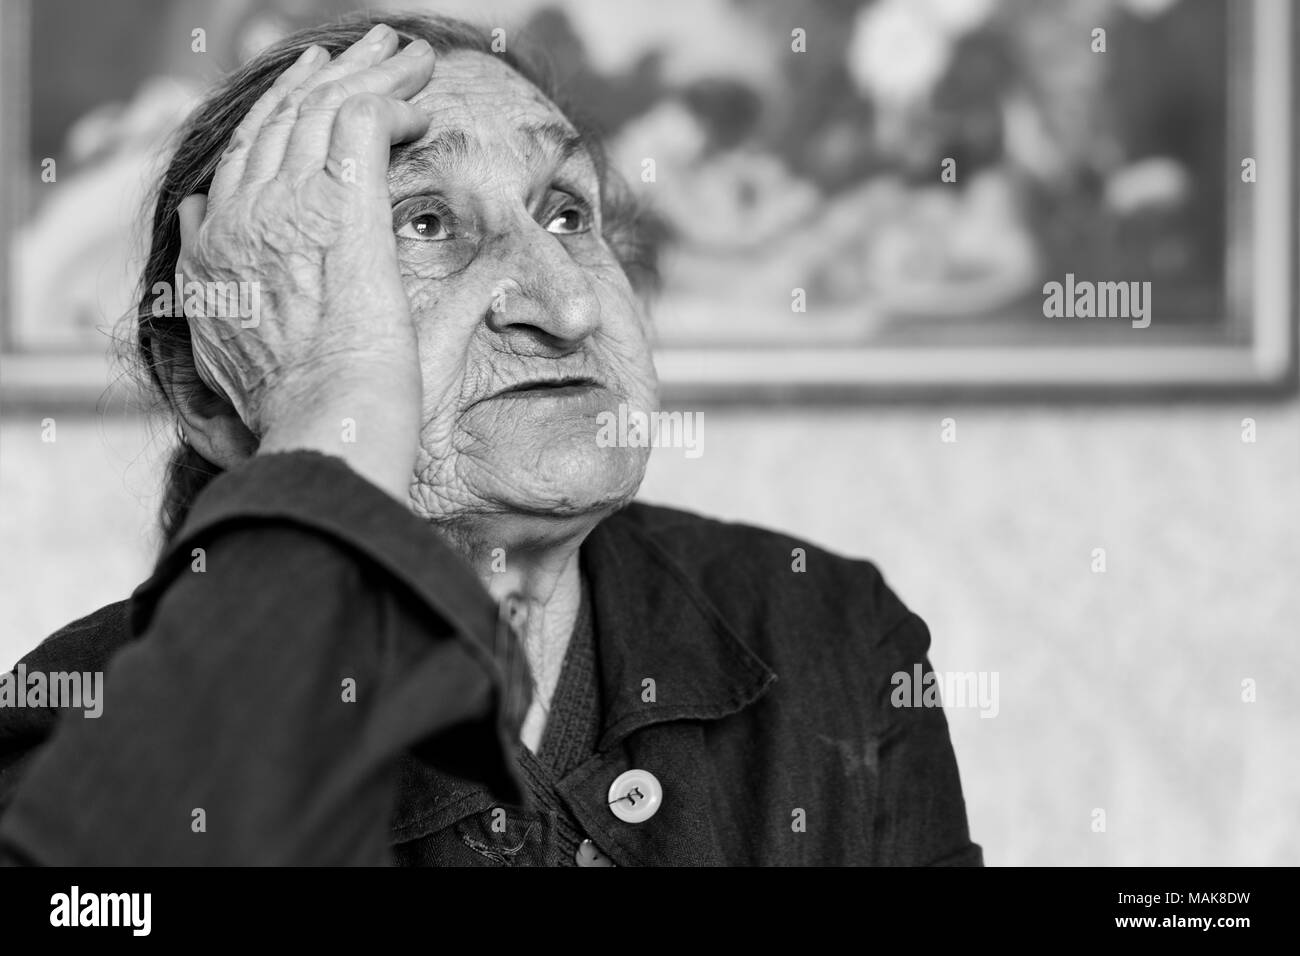 Beautiful 80 plus year old senior woman portrait. Black and white image of elderly worried woman sitting on a chair in a nursing home. - Stock Image